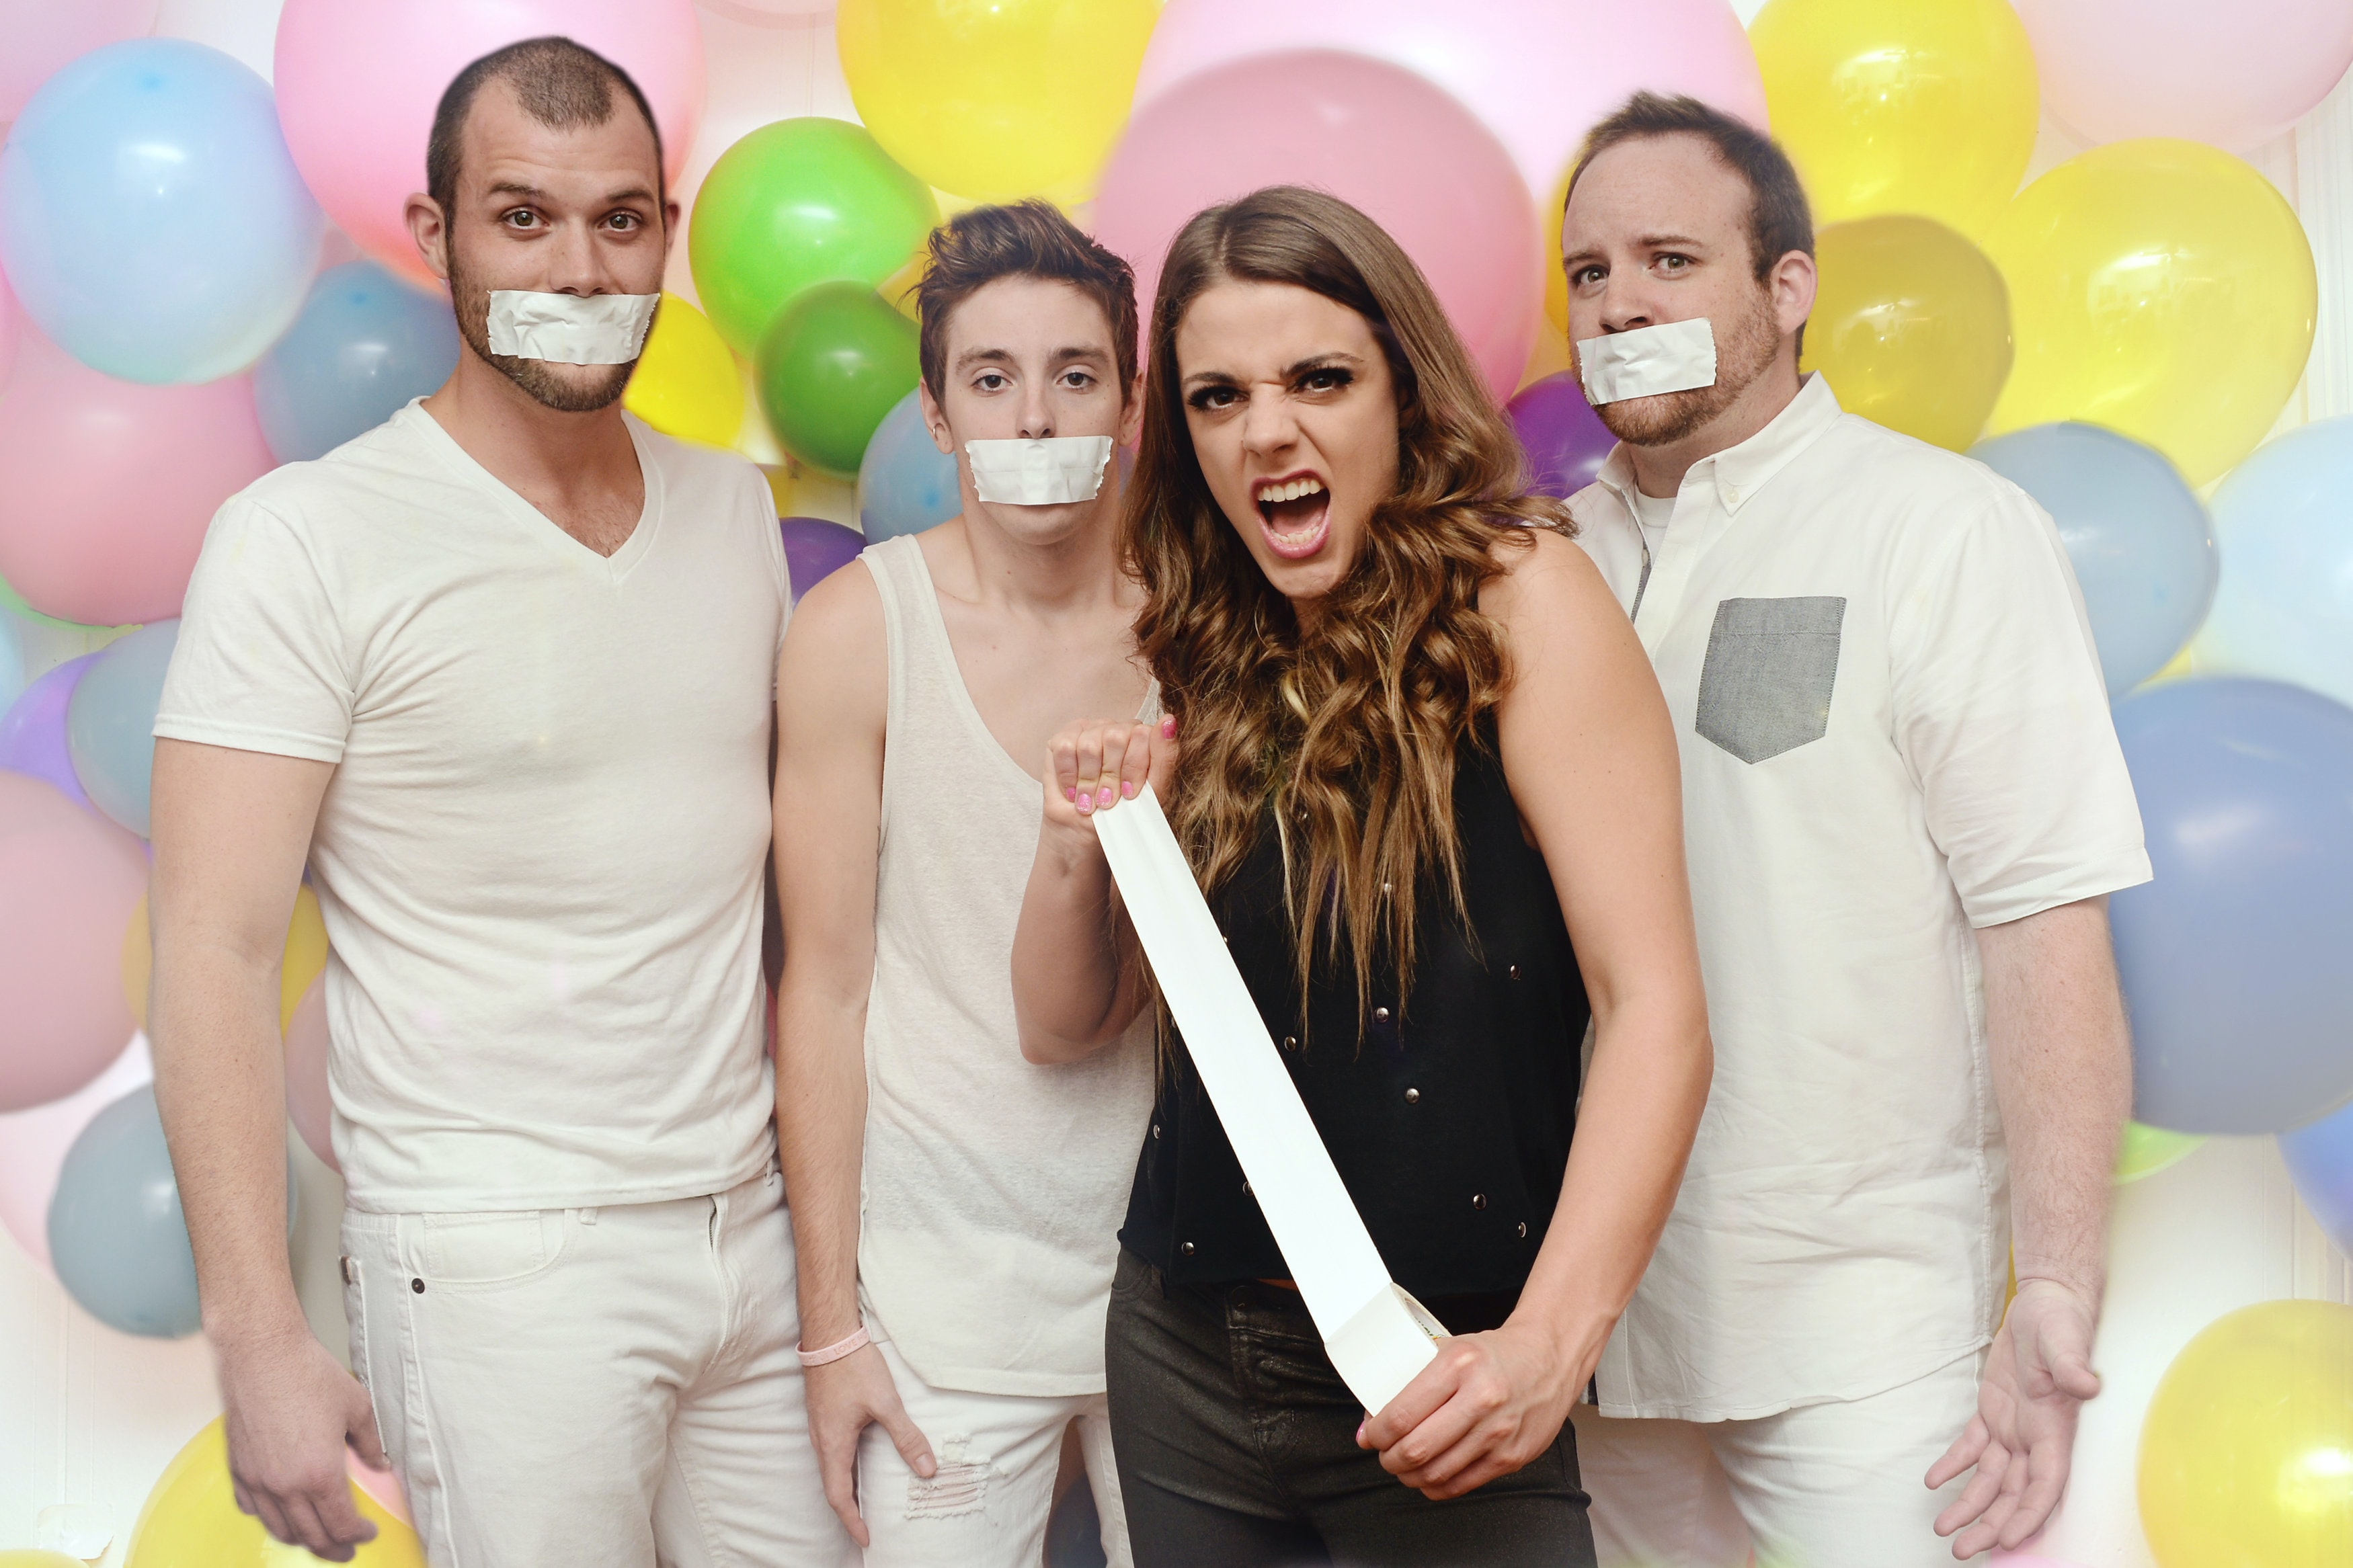 A woman holding a tape standing in front of three men in white with tape covered mouths and balloons behind them